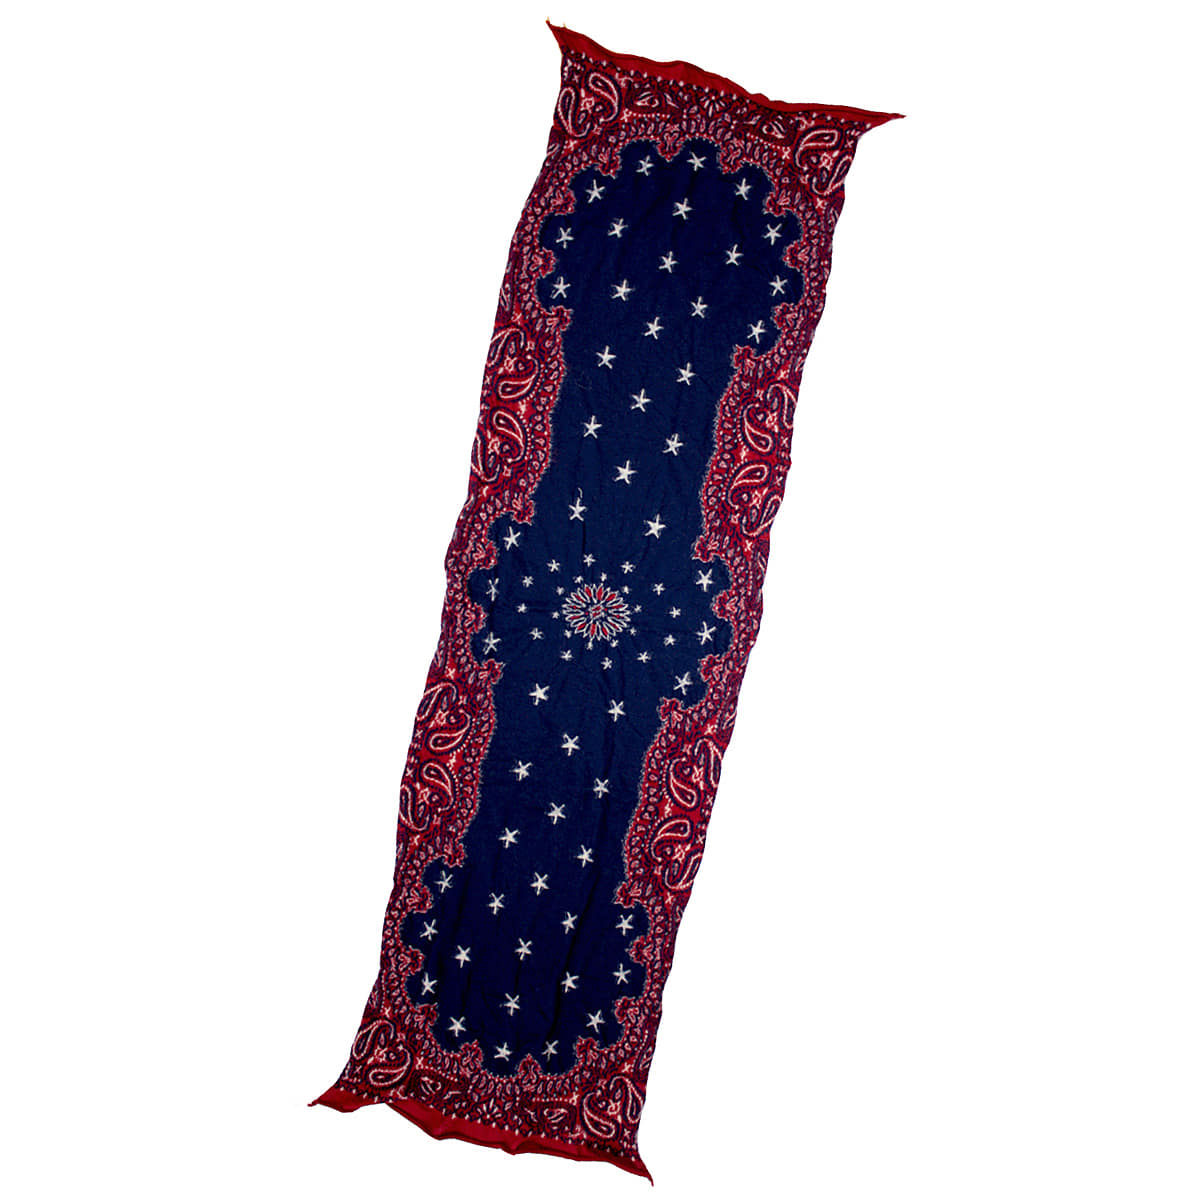 [KAPITAL] COMPRESSED WOOL SCARF COSMIC STAR 'RED'